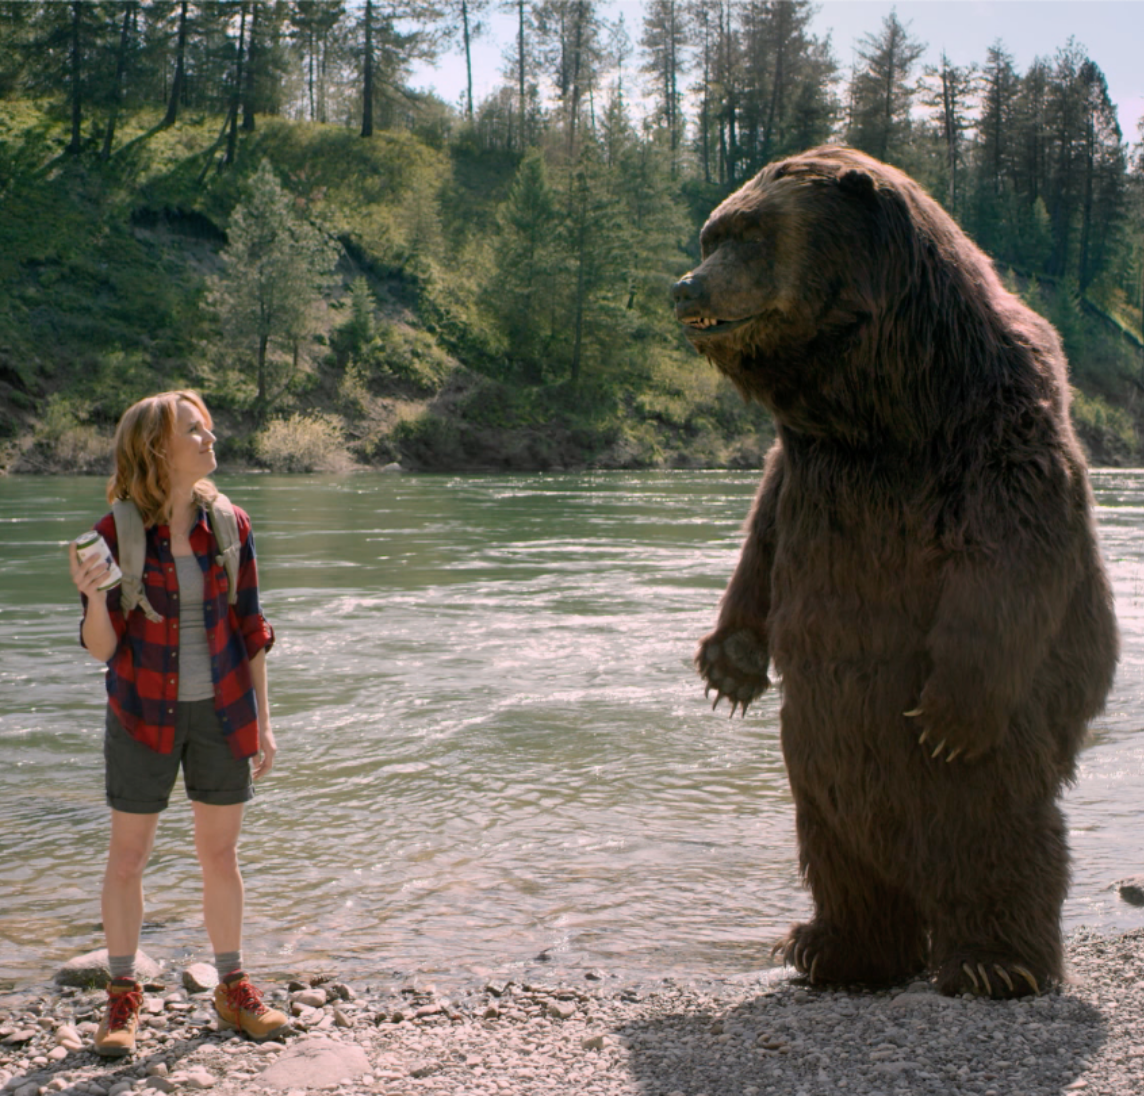 Woman hiker talking to a bear at the edge of a river